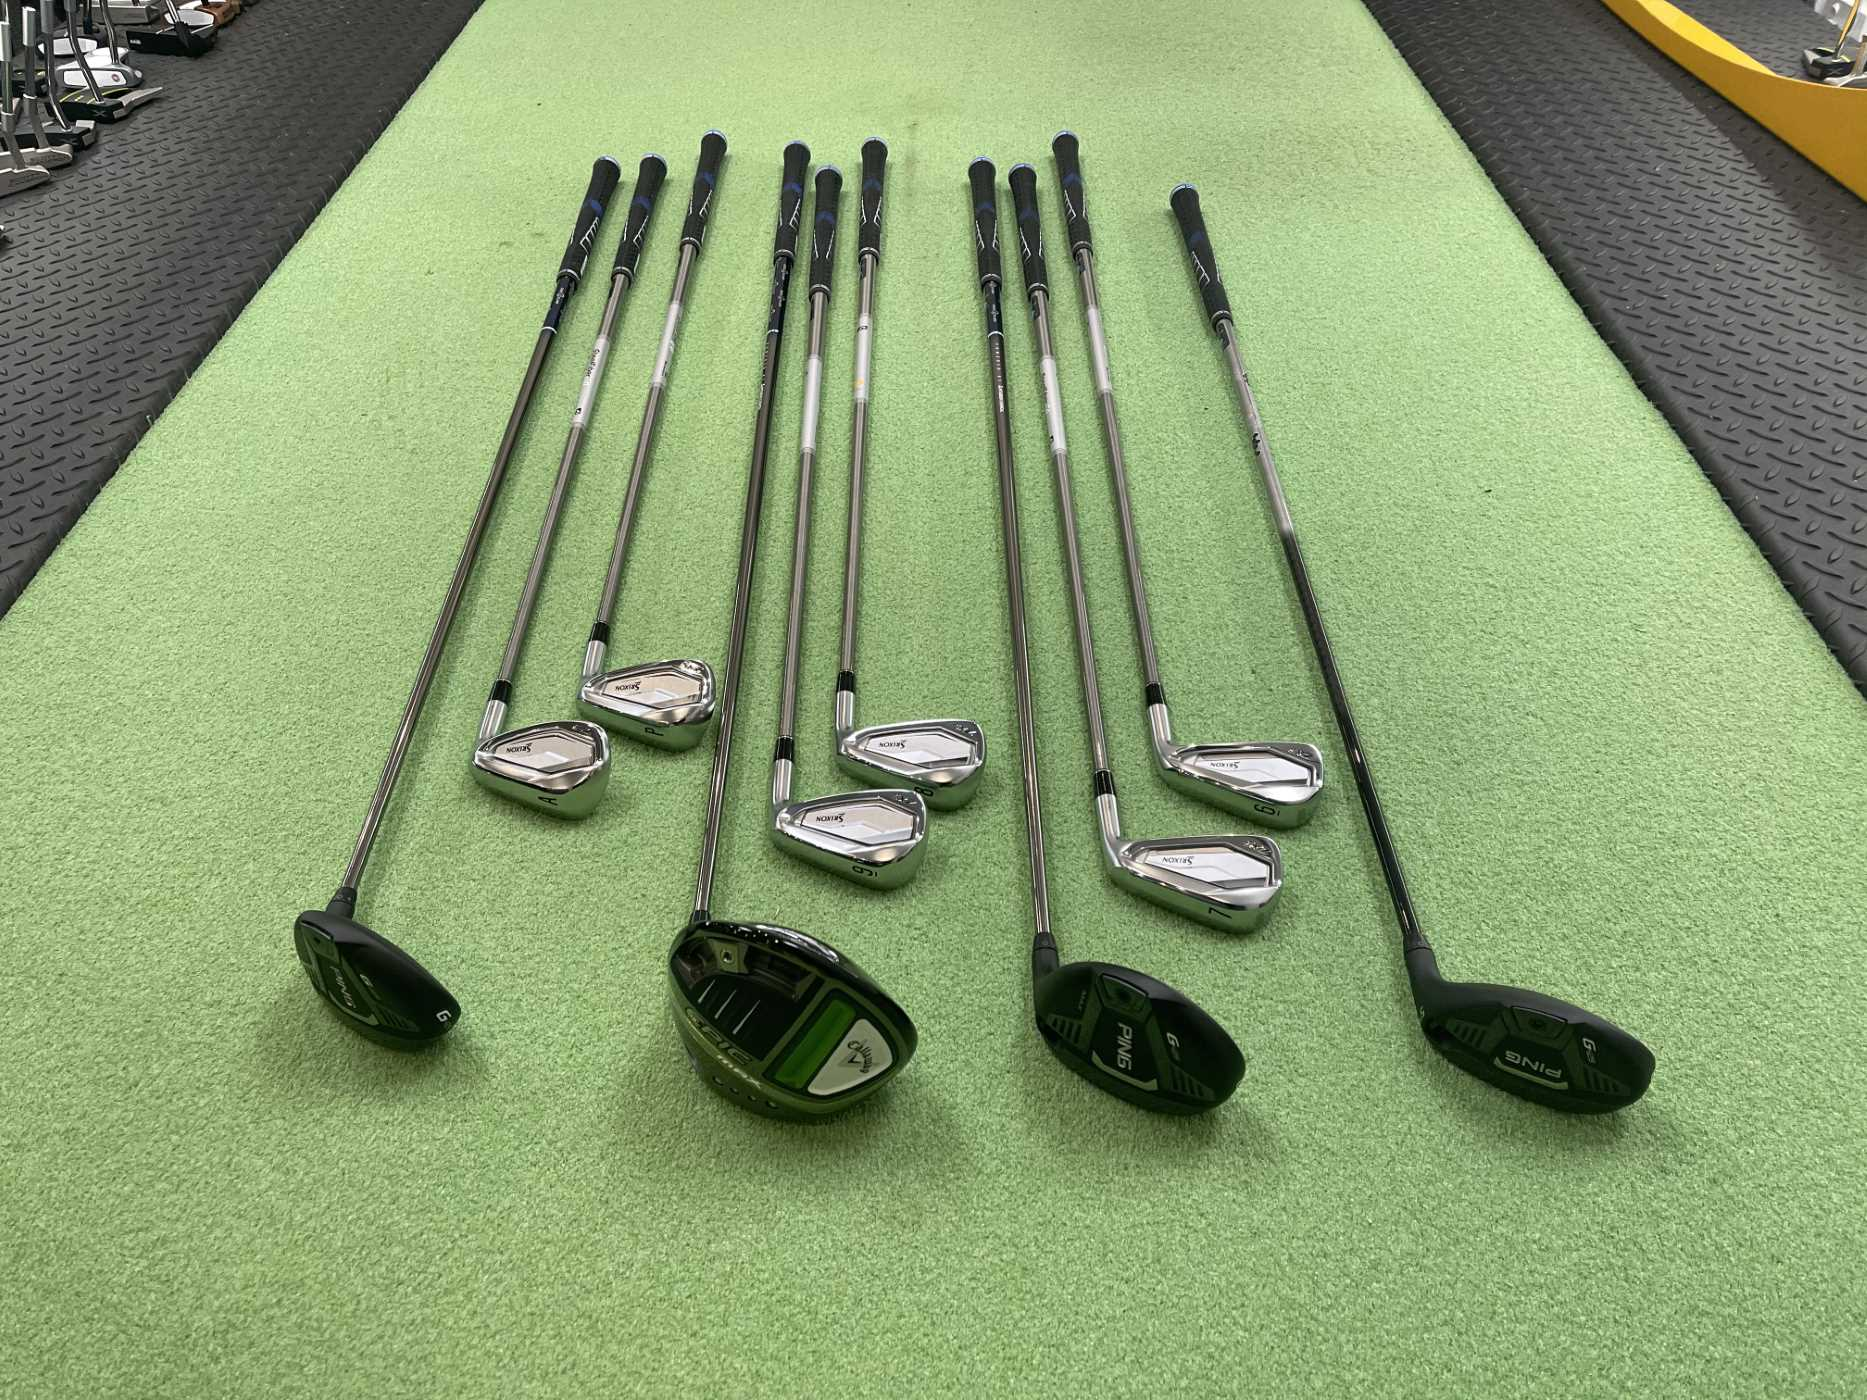 BOTW Callaway EPIC Max, Ping G425 Fairway & Hybrid Srixon ZX 5 all with SST Pured shafts